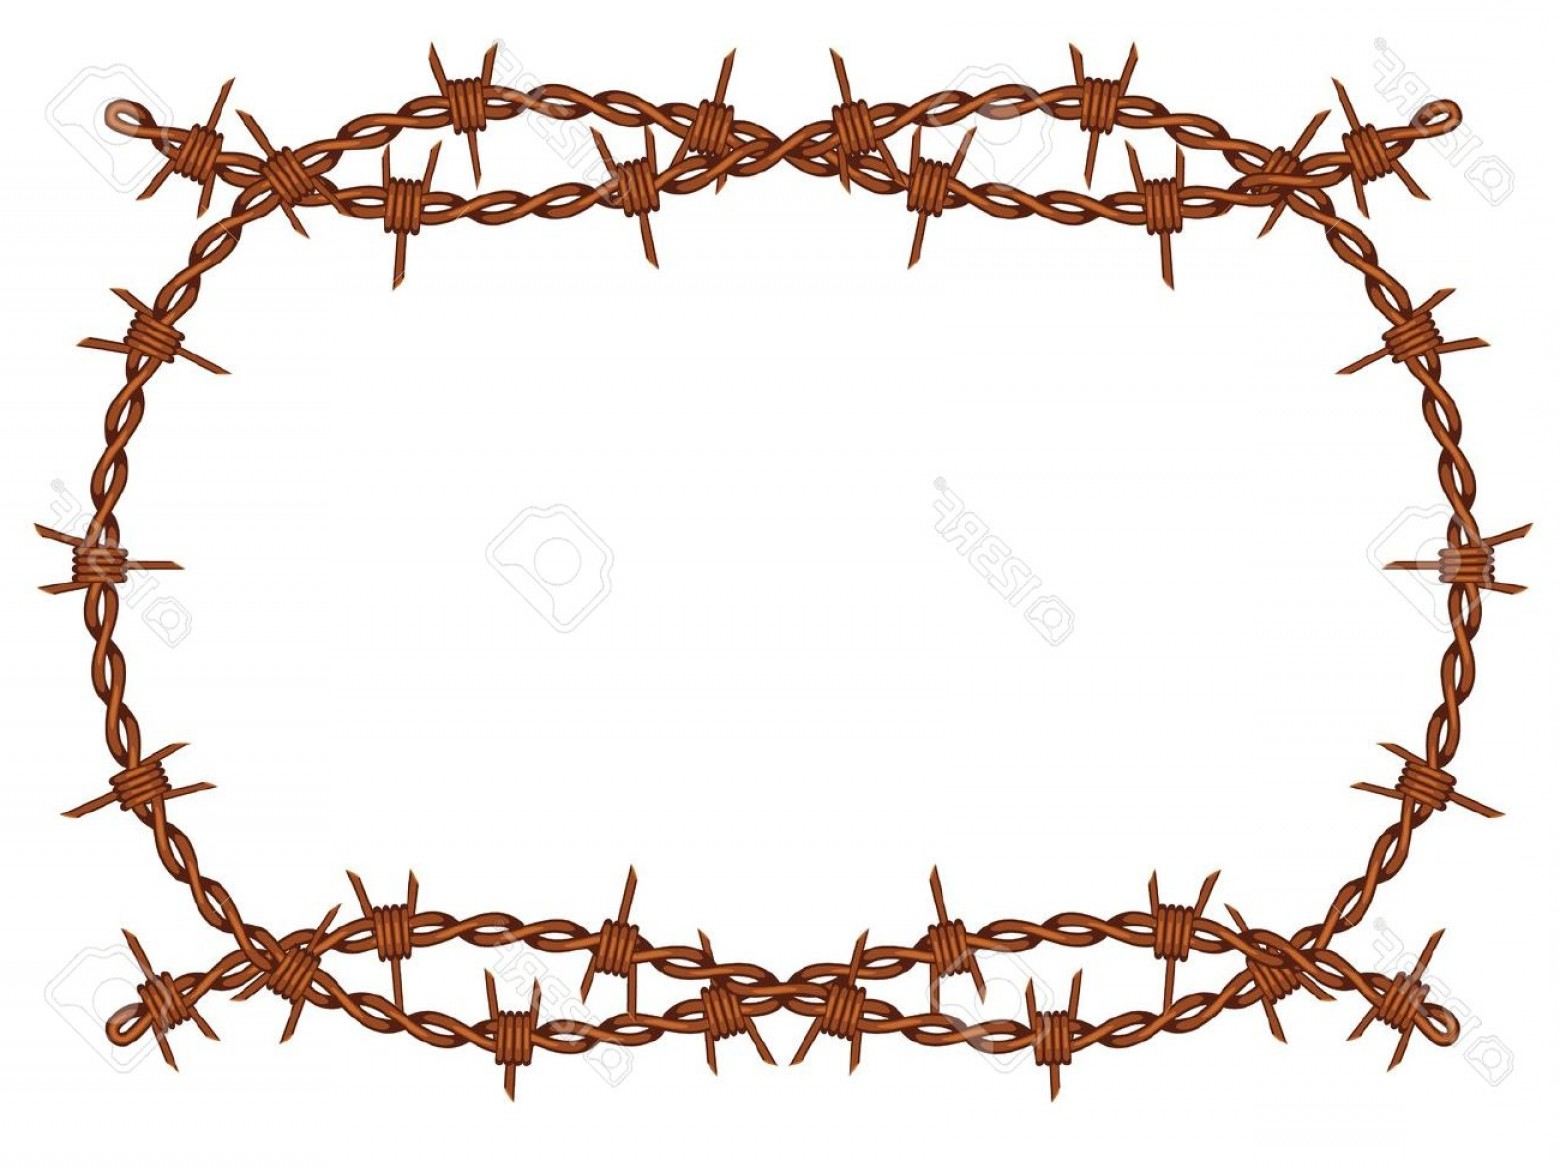 TIF Barbed Wire Vector: Photoold Rusty Barbed Wire Frame Pattern Isolated